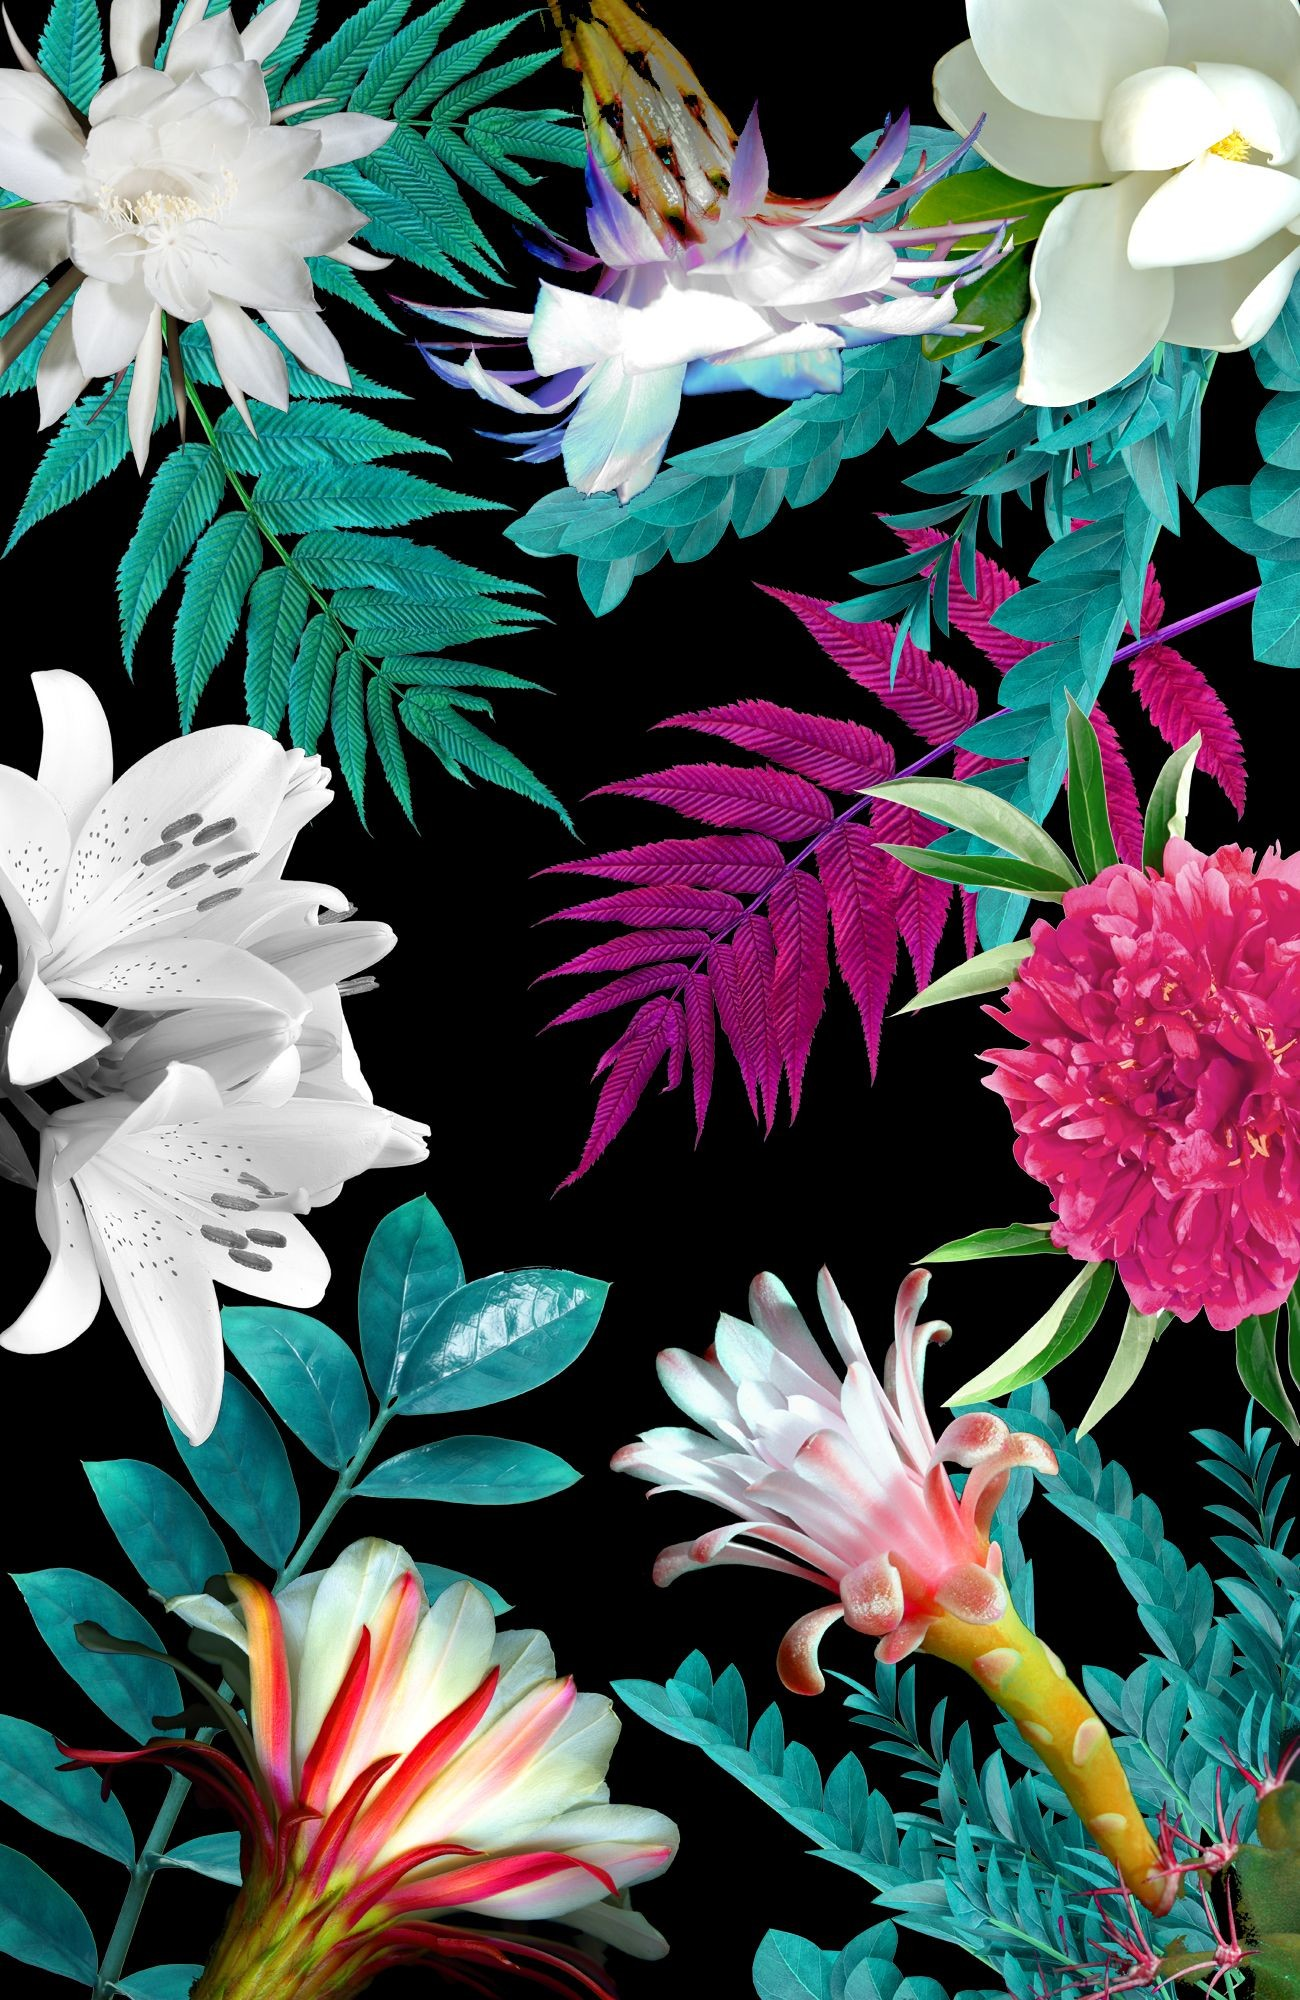 Res: 1300x2000, Exotic Flower Wallpapers - Wallpaper Cave